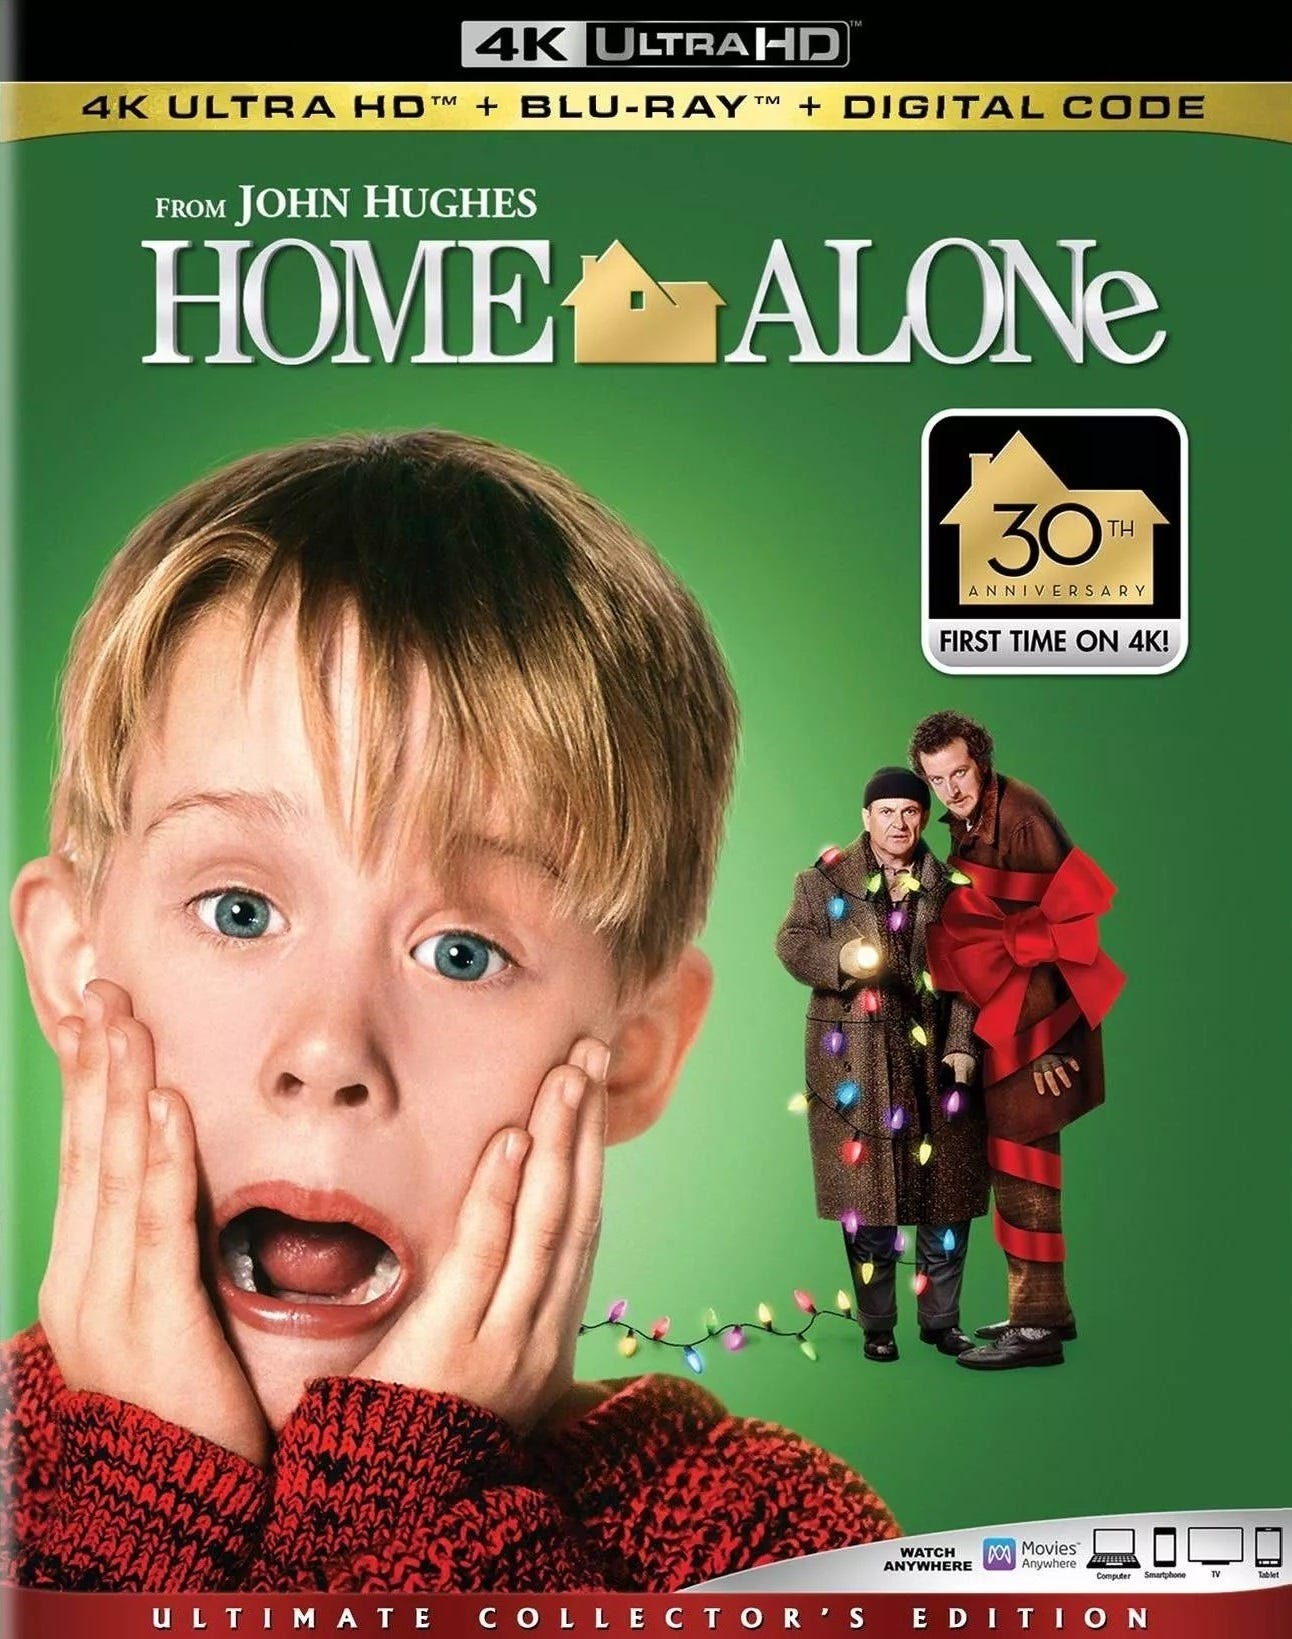 Home Alone 4K Blu-ray